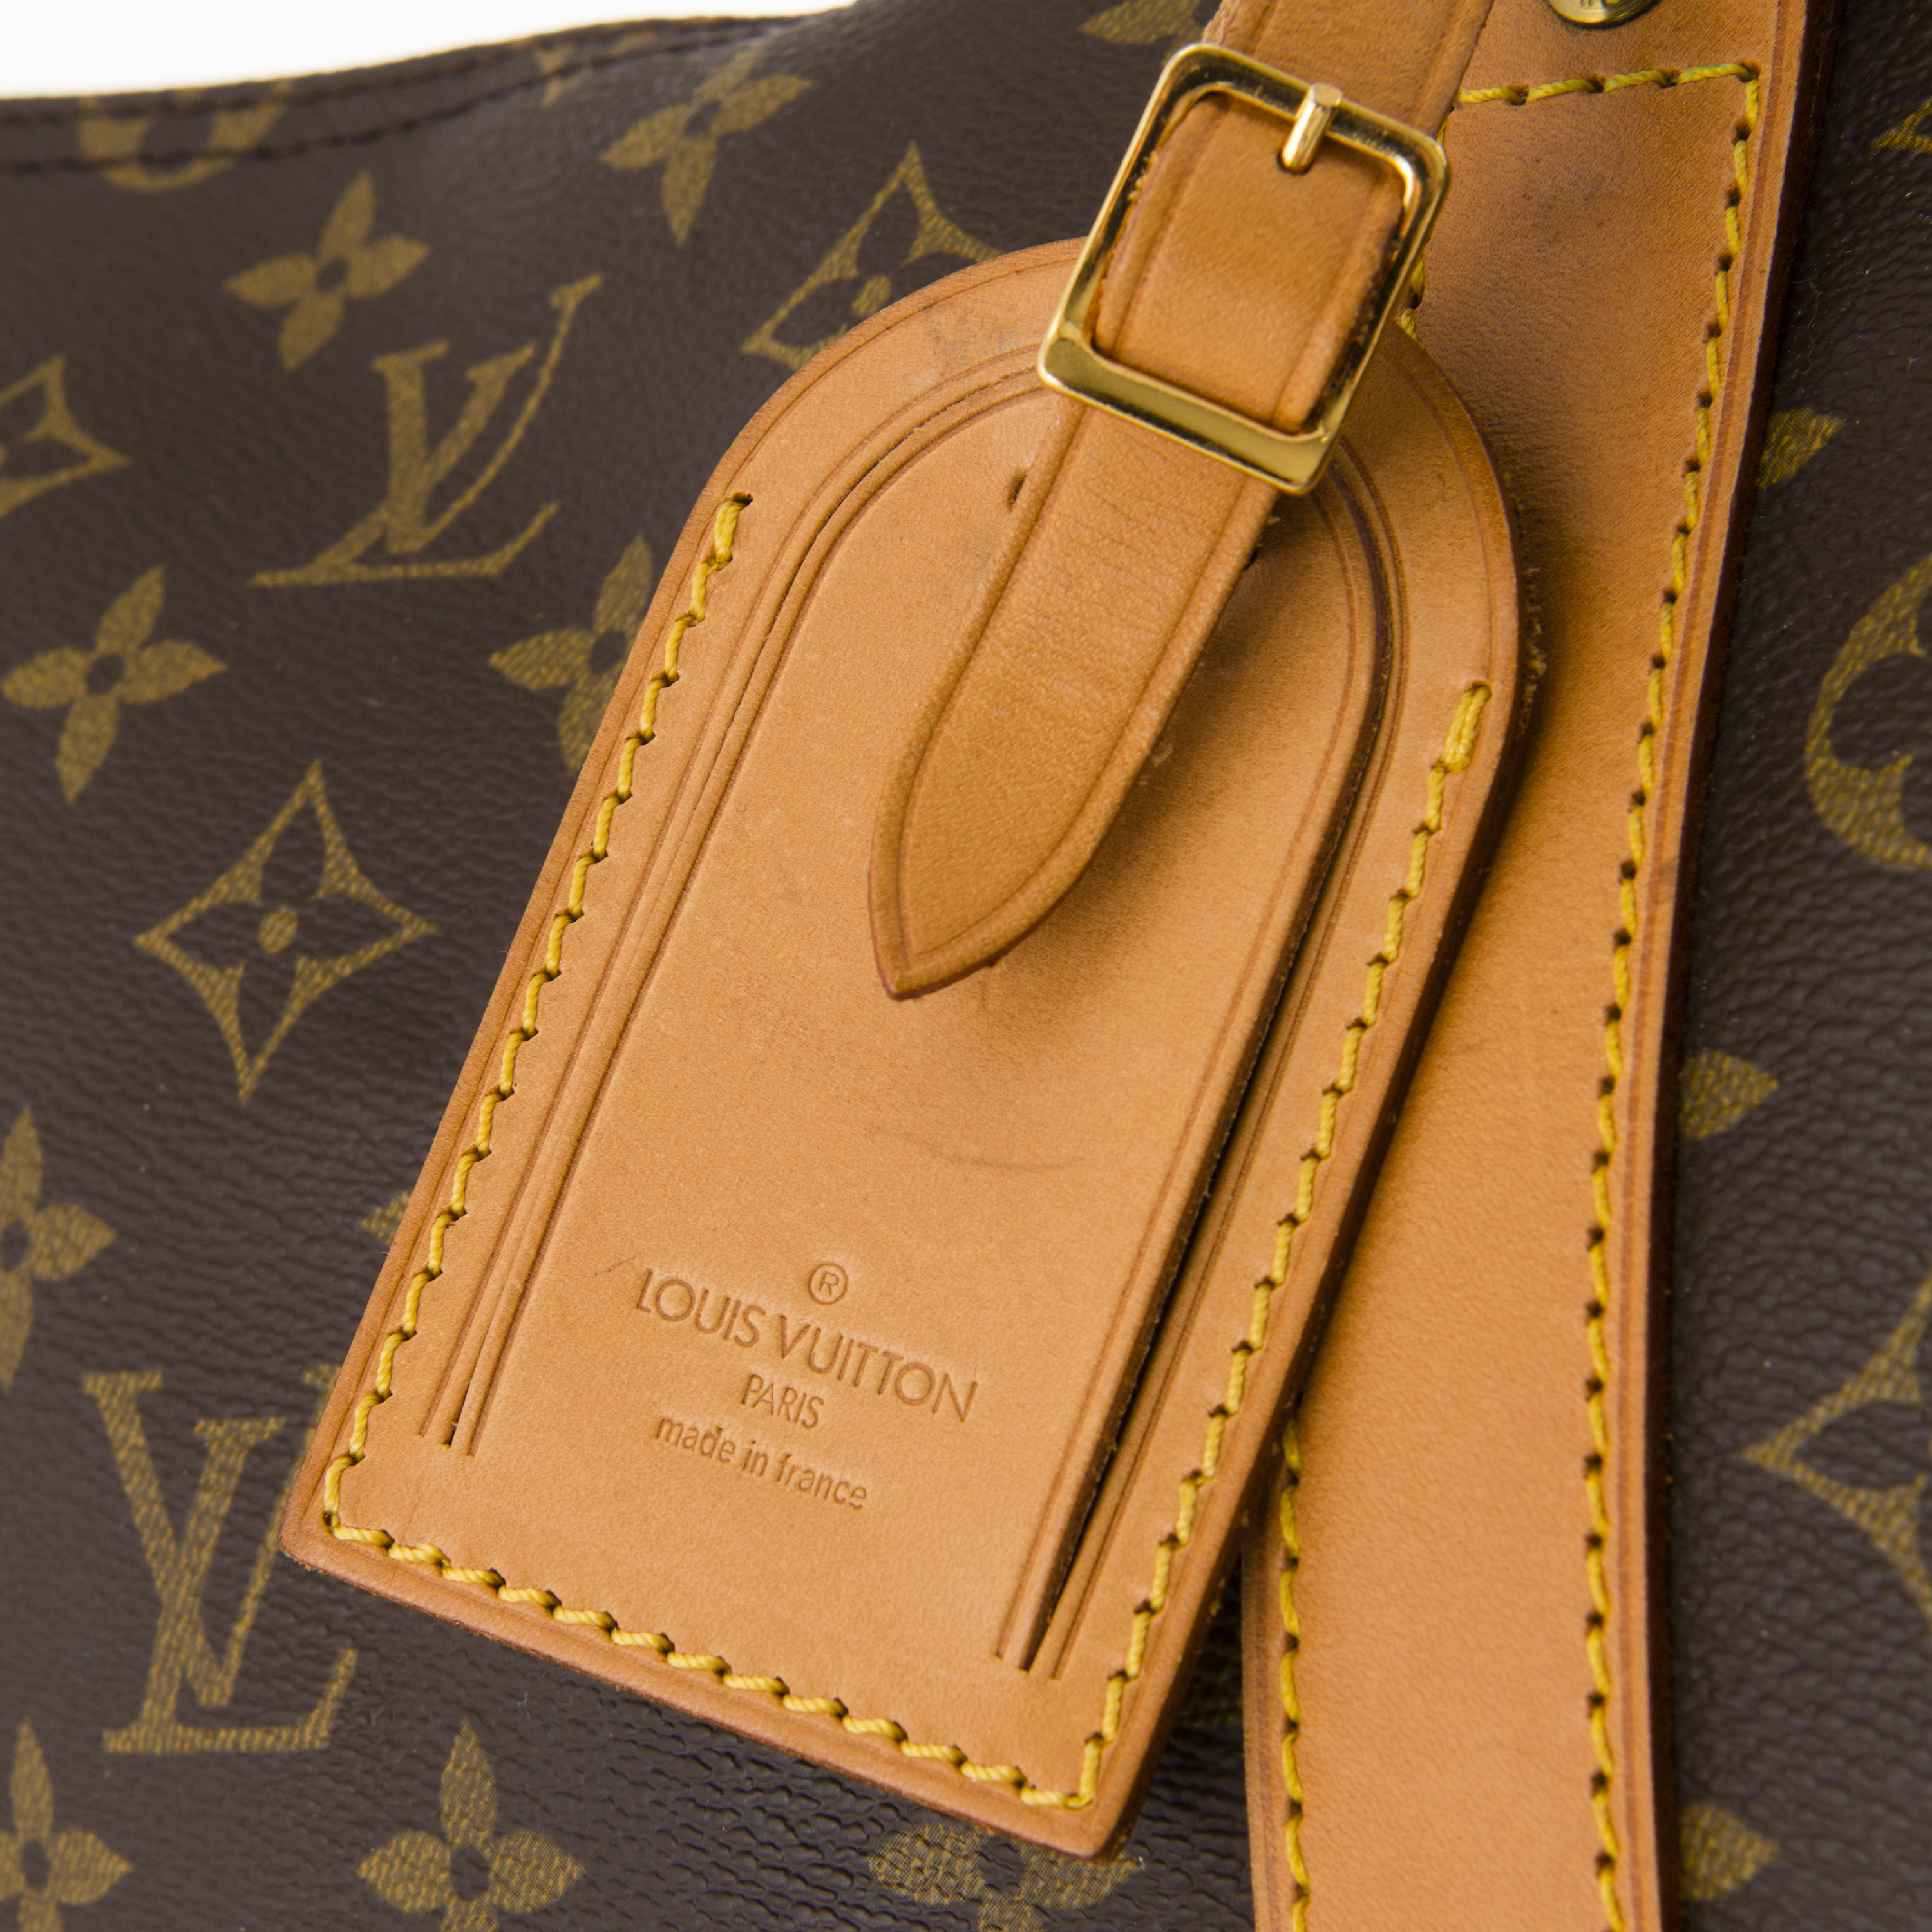 Images For Louis Vuitton Made In France >> Louis Vuitton Vintage Monogram Keepall 55 Bag Bukowskis